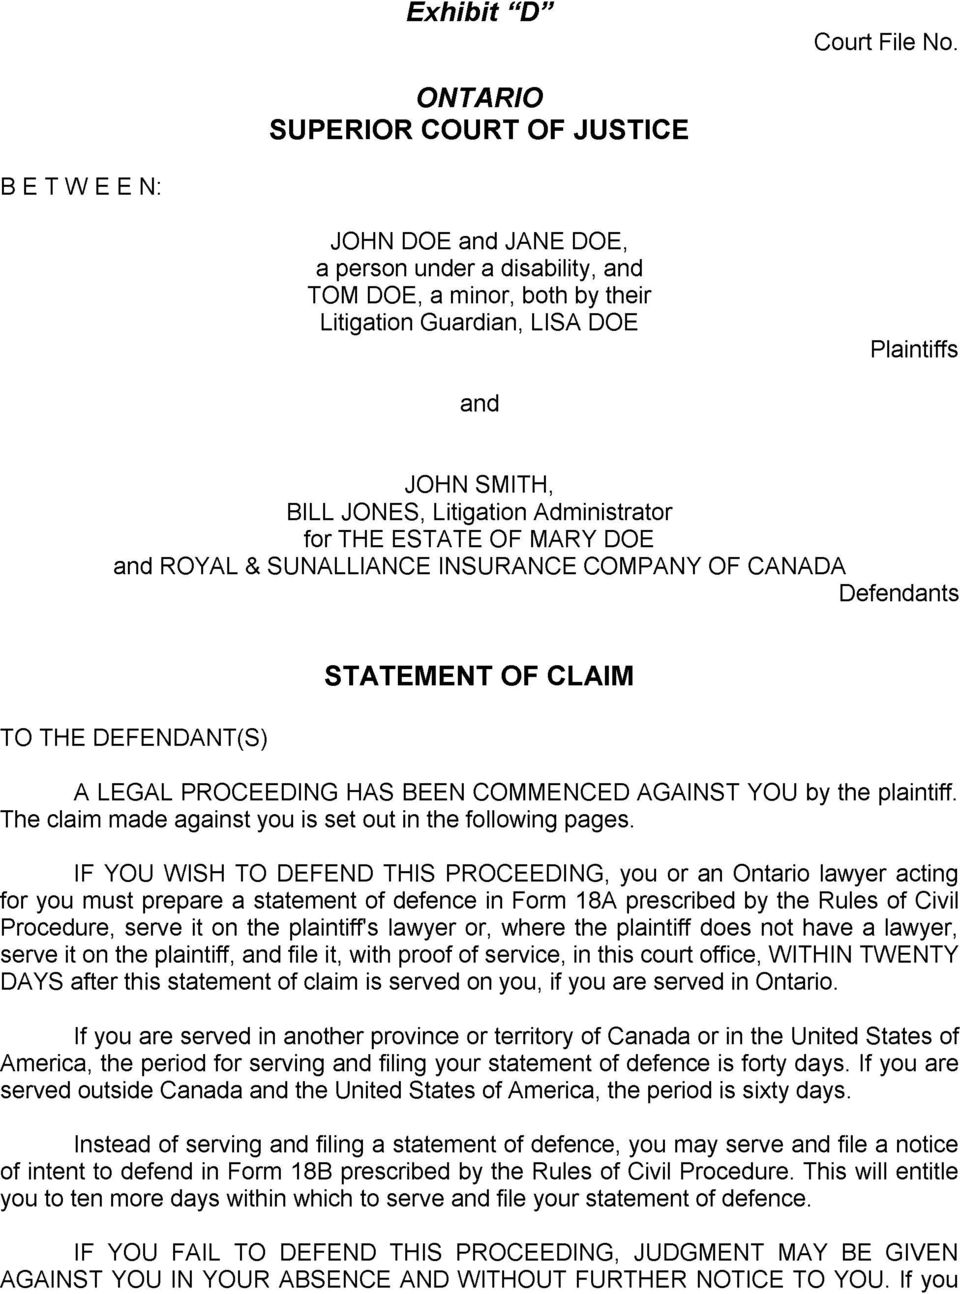 COMMENCED AGAINST YOU by the plaintiff The claim made against you is set out in the following pages IF YOU WISH TO DEFEND THIS PROCEEDING you or an Ontario lawyer acting for you must prepare a